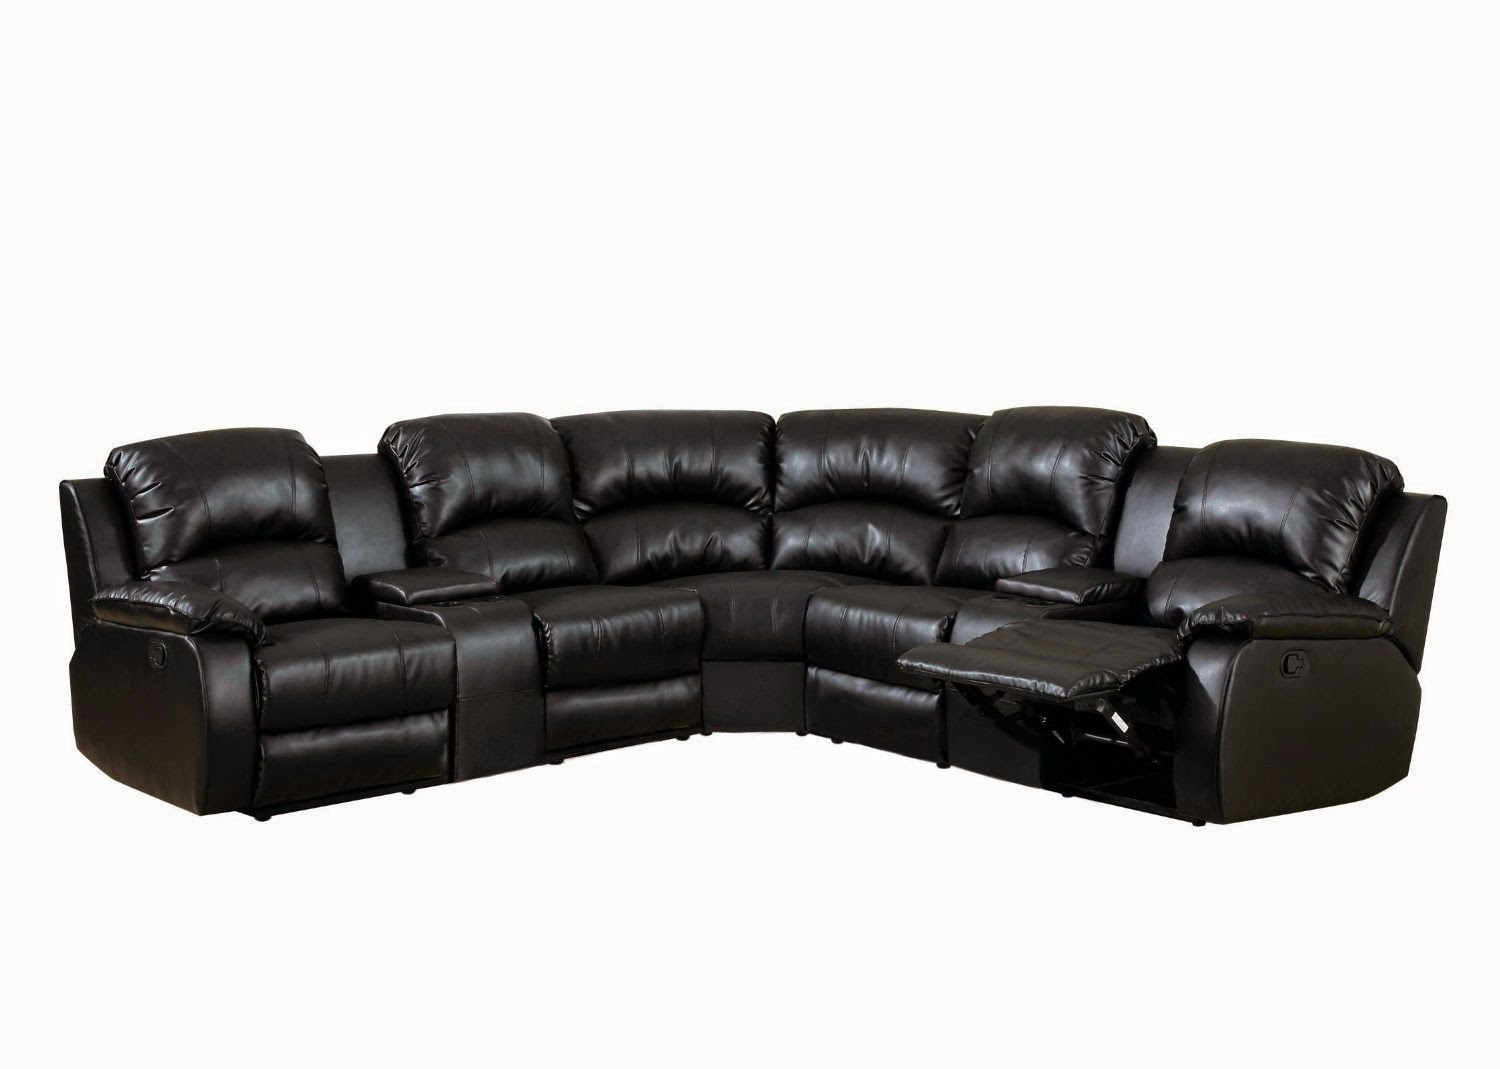 Best Recliner Sofa Brand Recommendation Wanted Curved Leather Recliner Sofa Set